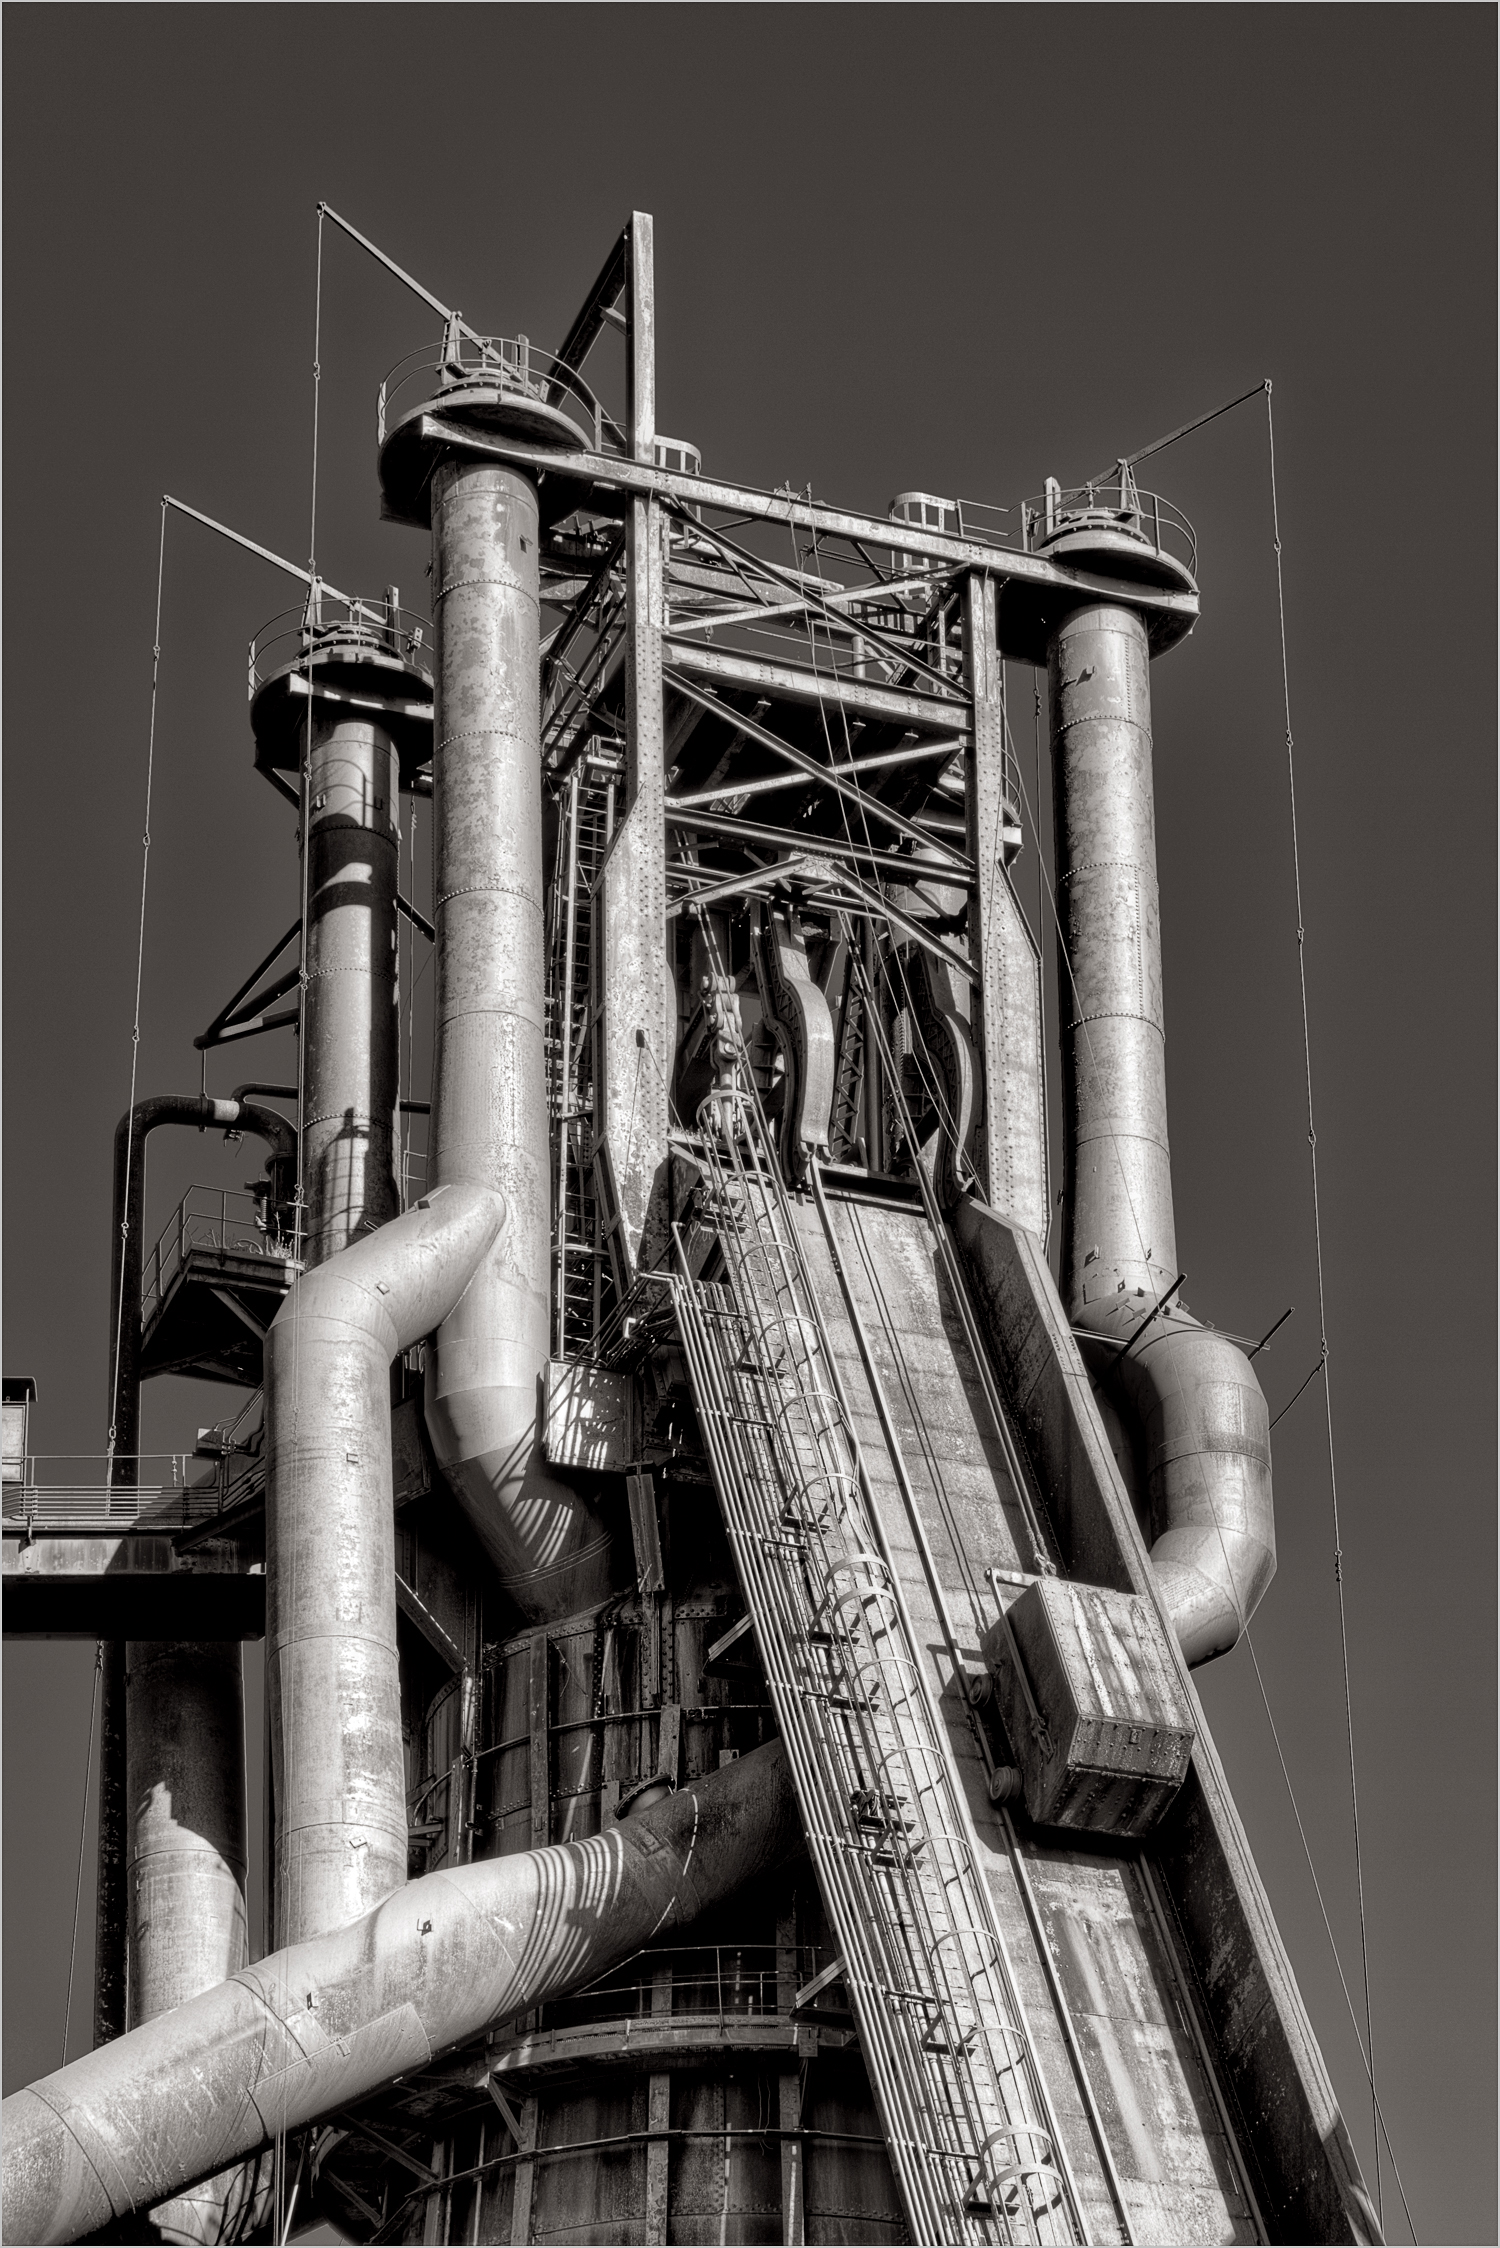 A skip cars ascends the Carrie Furnace. These cars were used to dump raw materials into the top of the furnace. The four large vertical pipes are bleeder valves, used to adjust the pressure in the furnace.